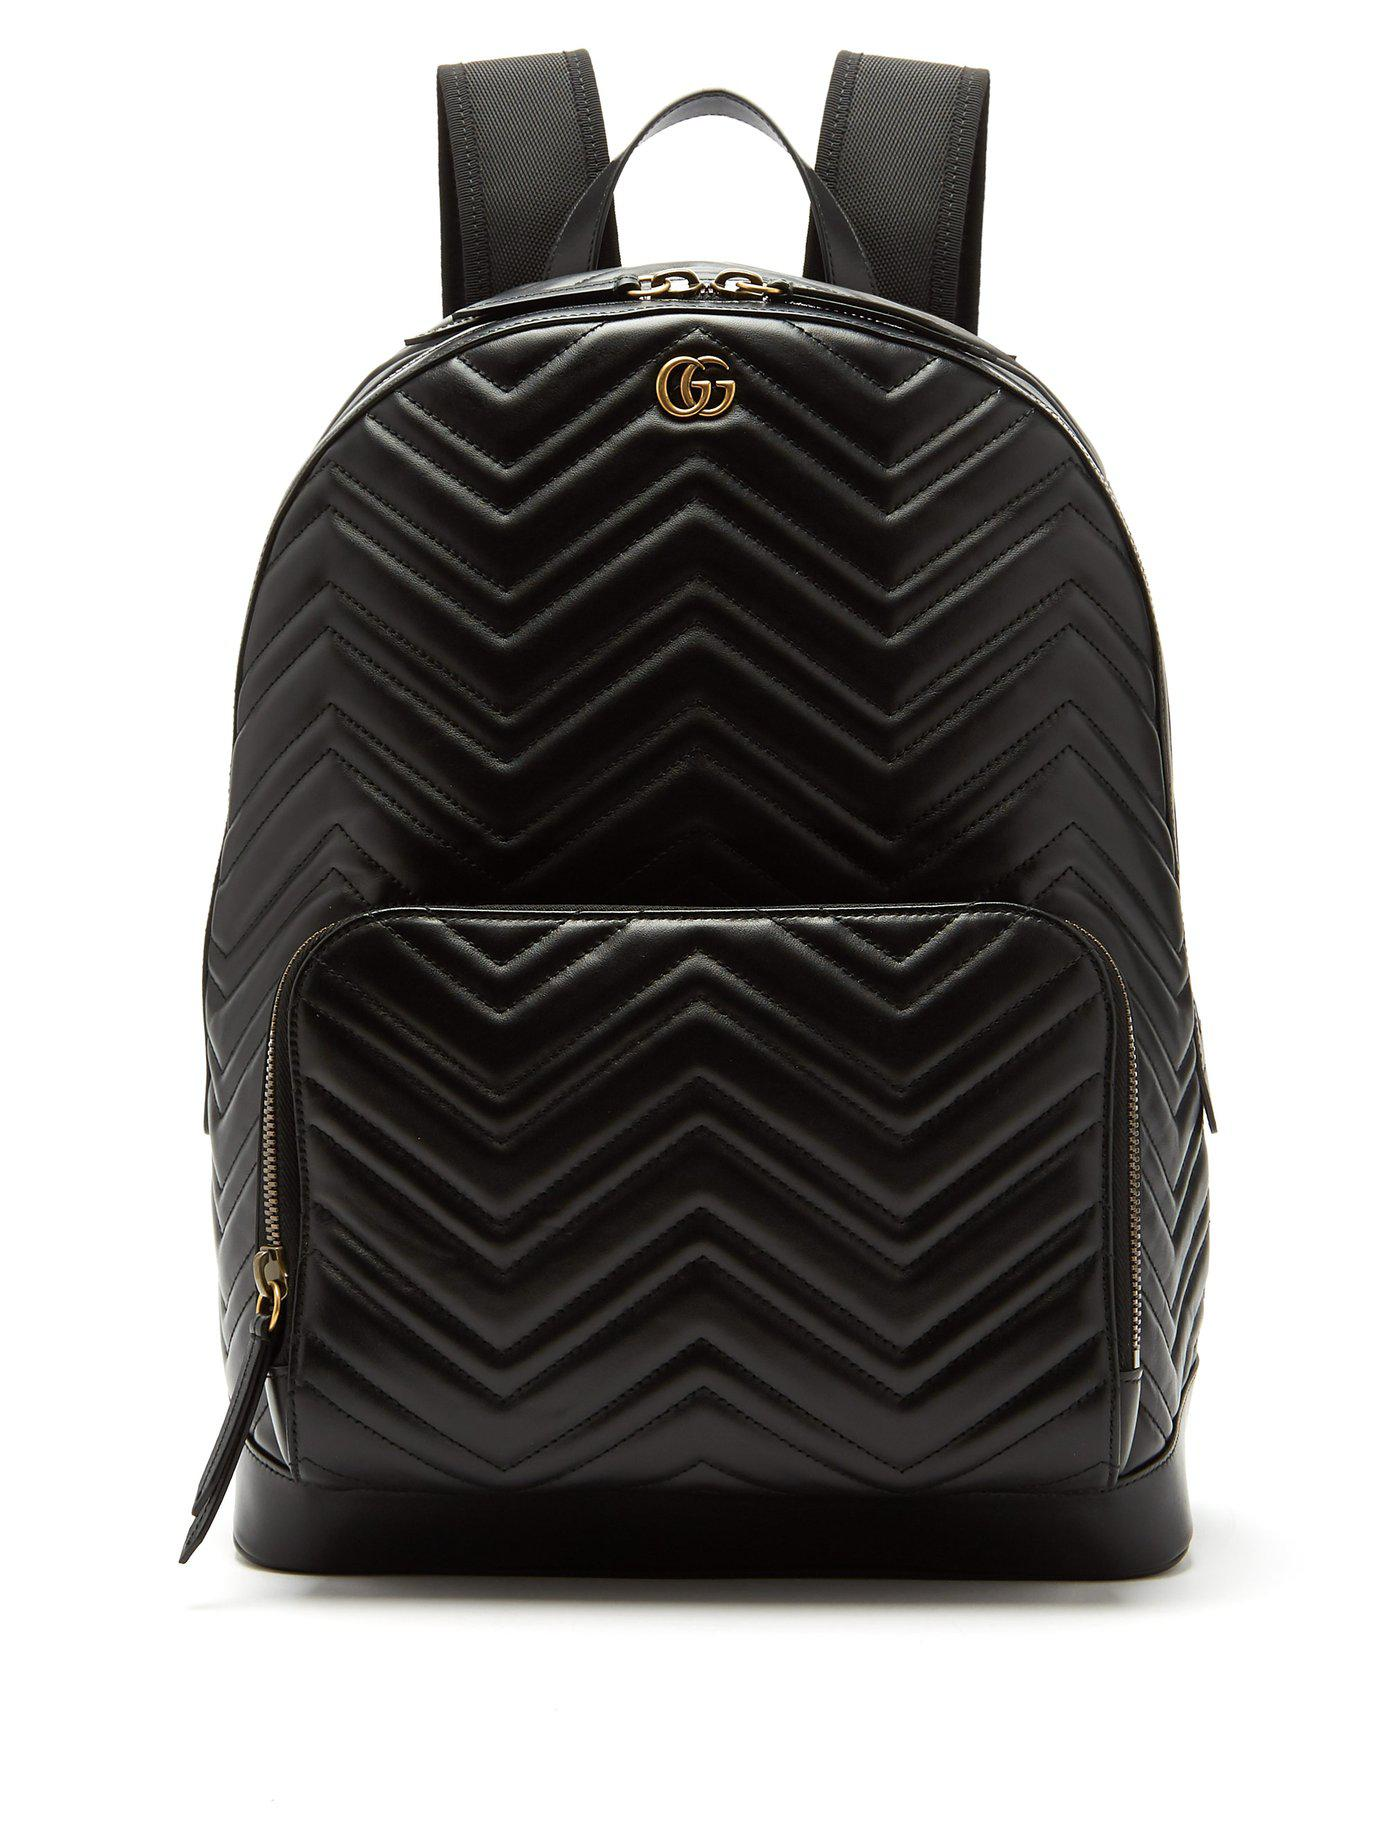 64056437cc53 Lyst - Gucci Marmont Leather Backpack in Black for Men